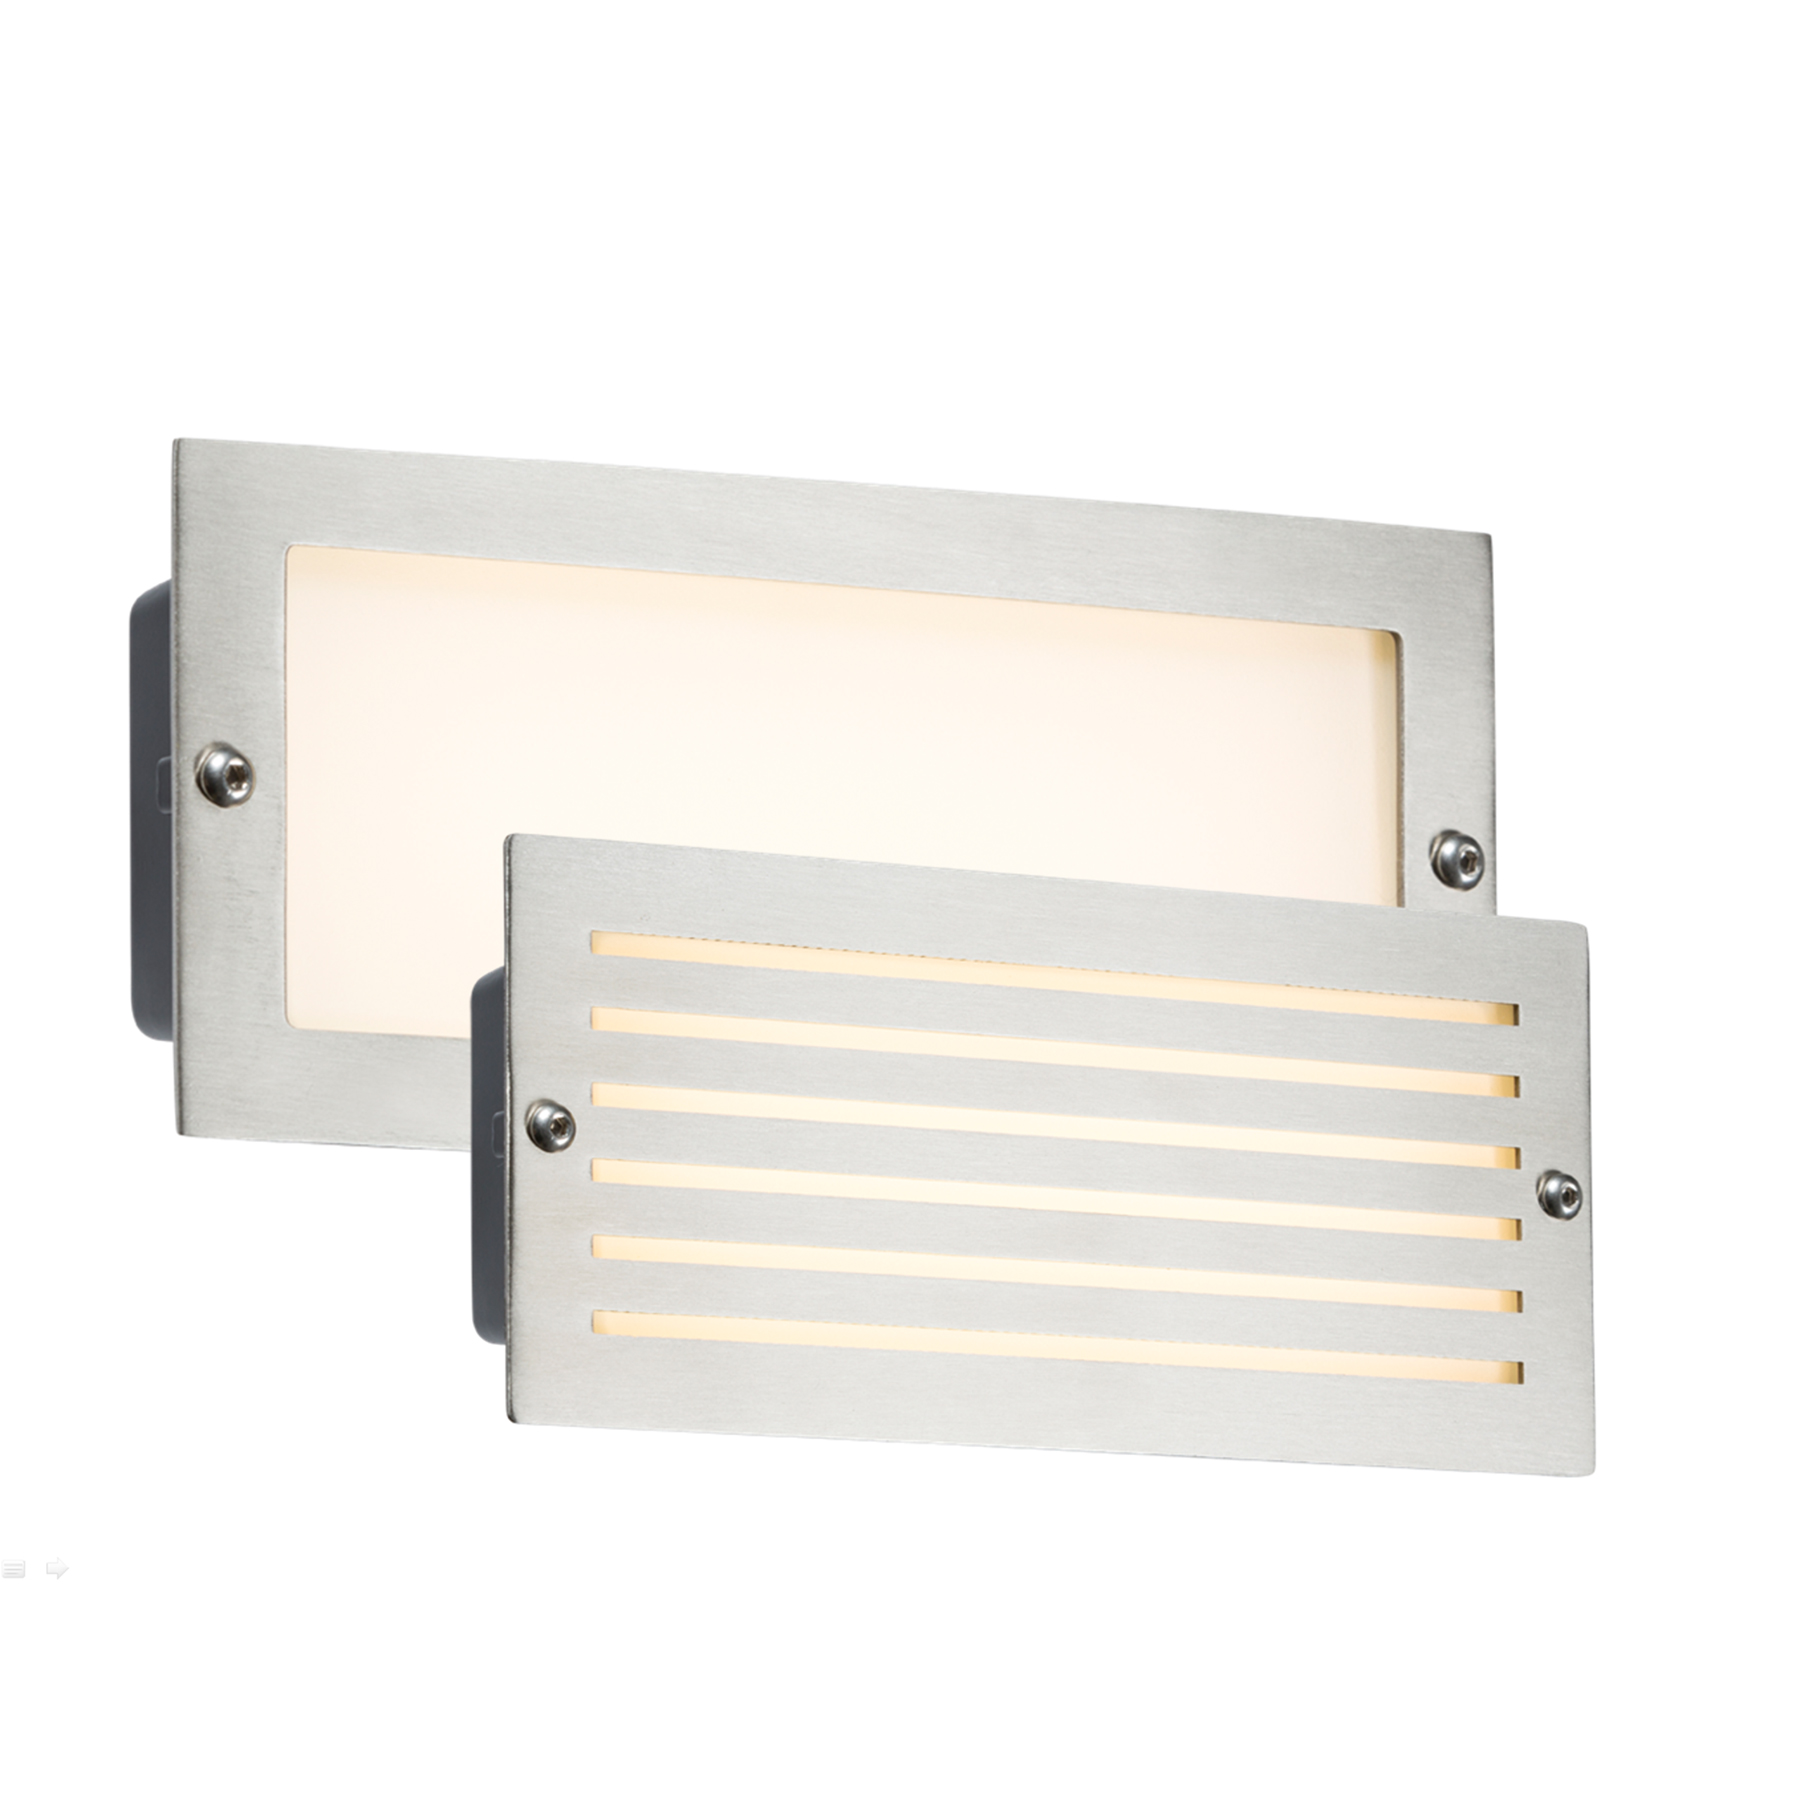 White Brick Wall Lights : Knightsbridge LED Bricklight Outdoor Brick Light White/Brushed Steel Low Energy eBay